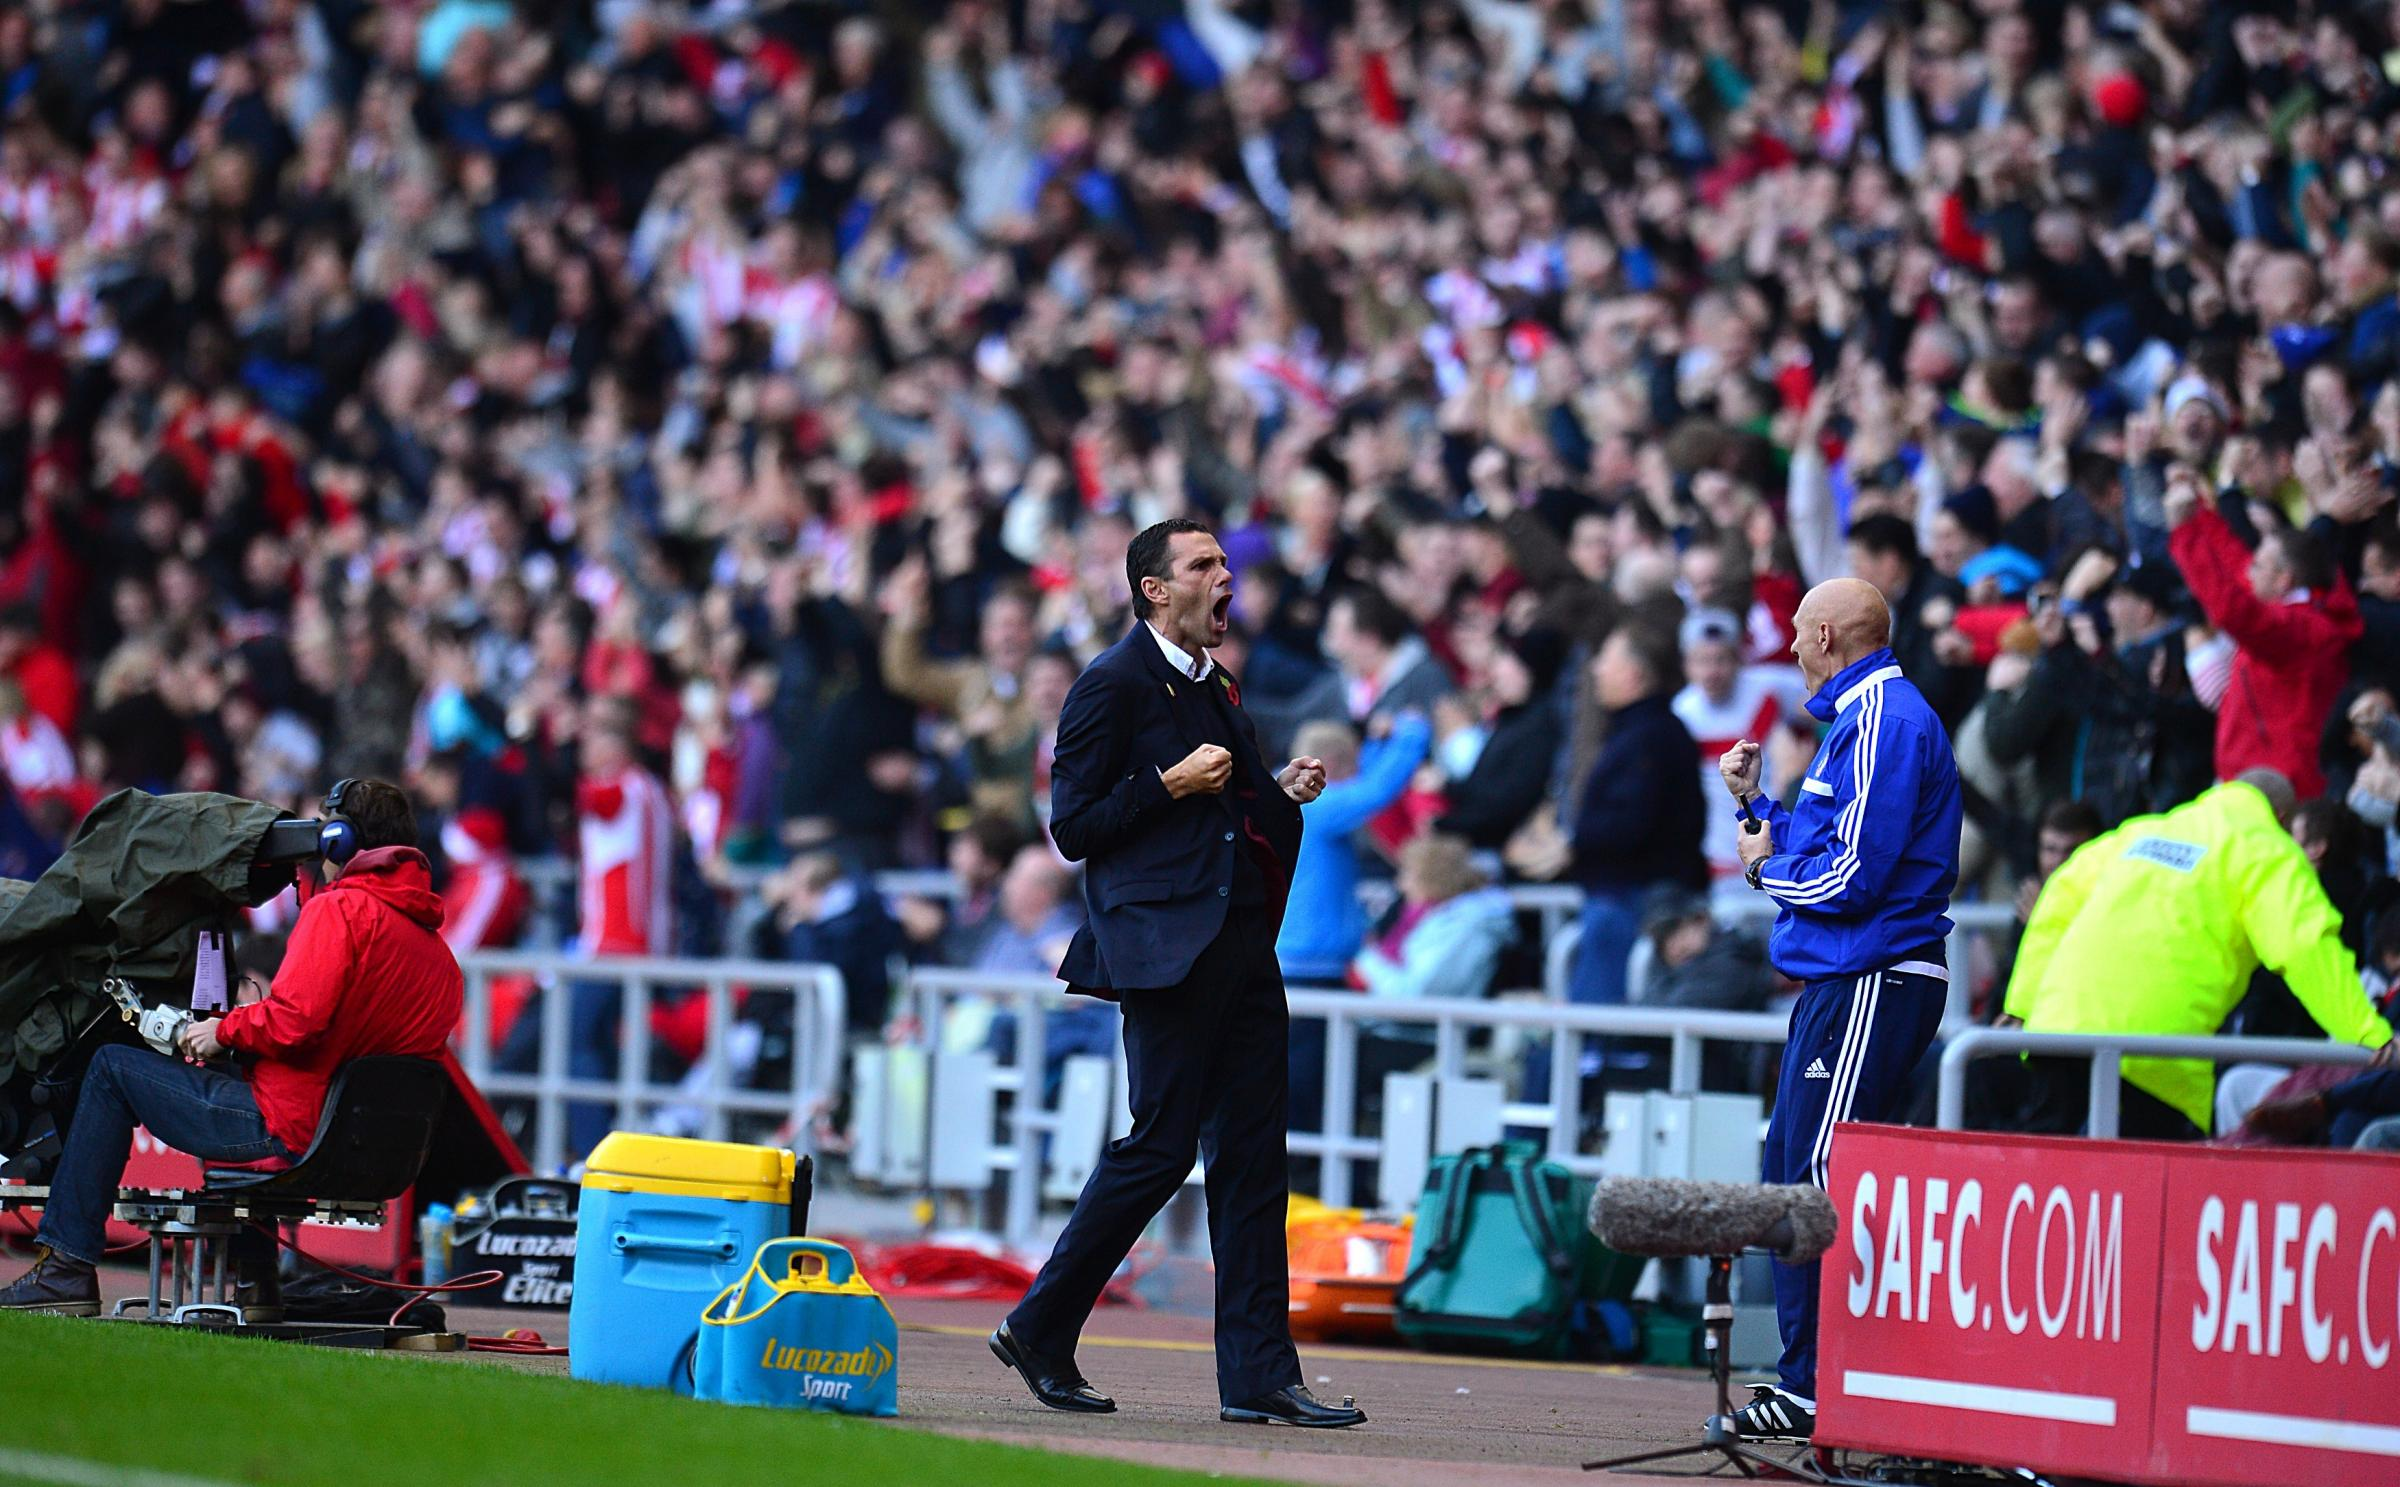 SHARED BOND: March's Capital One Cup final will reaffirm the bond between Sunderland and its fans